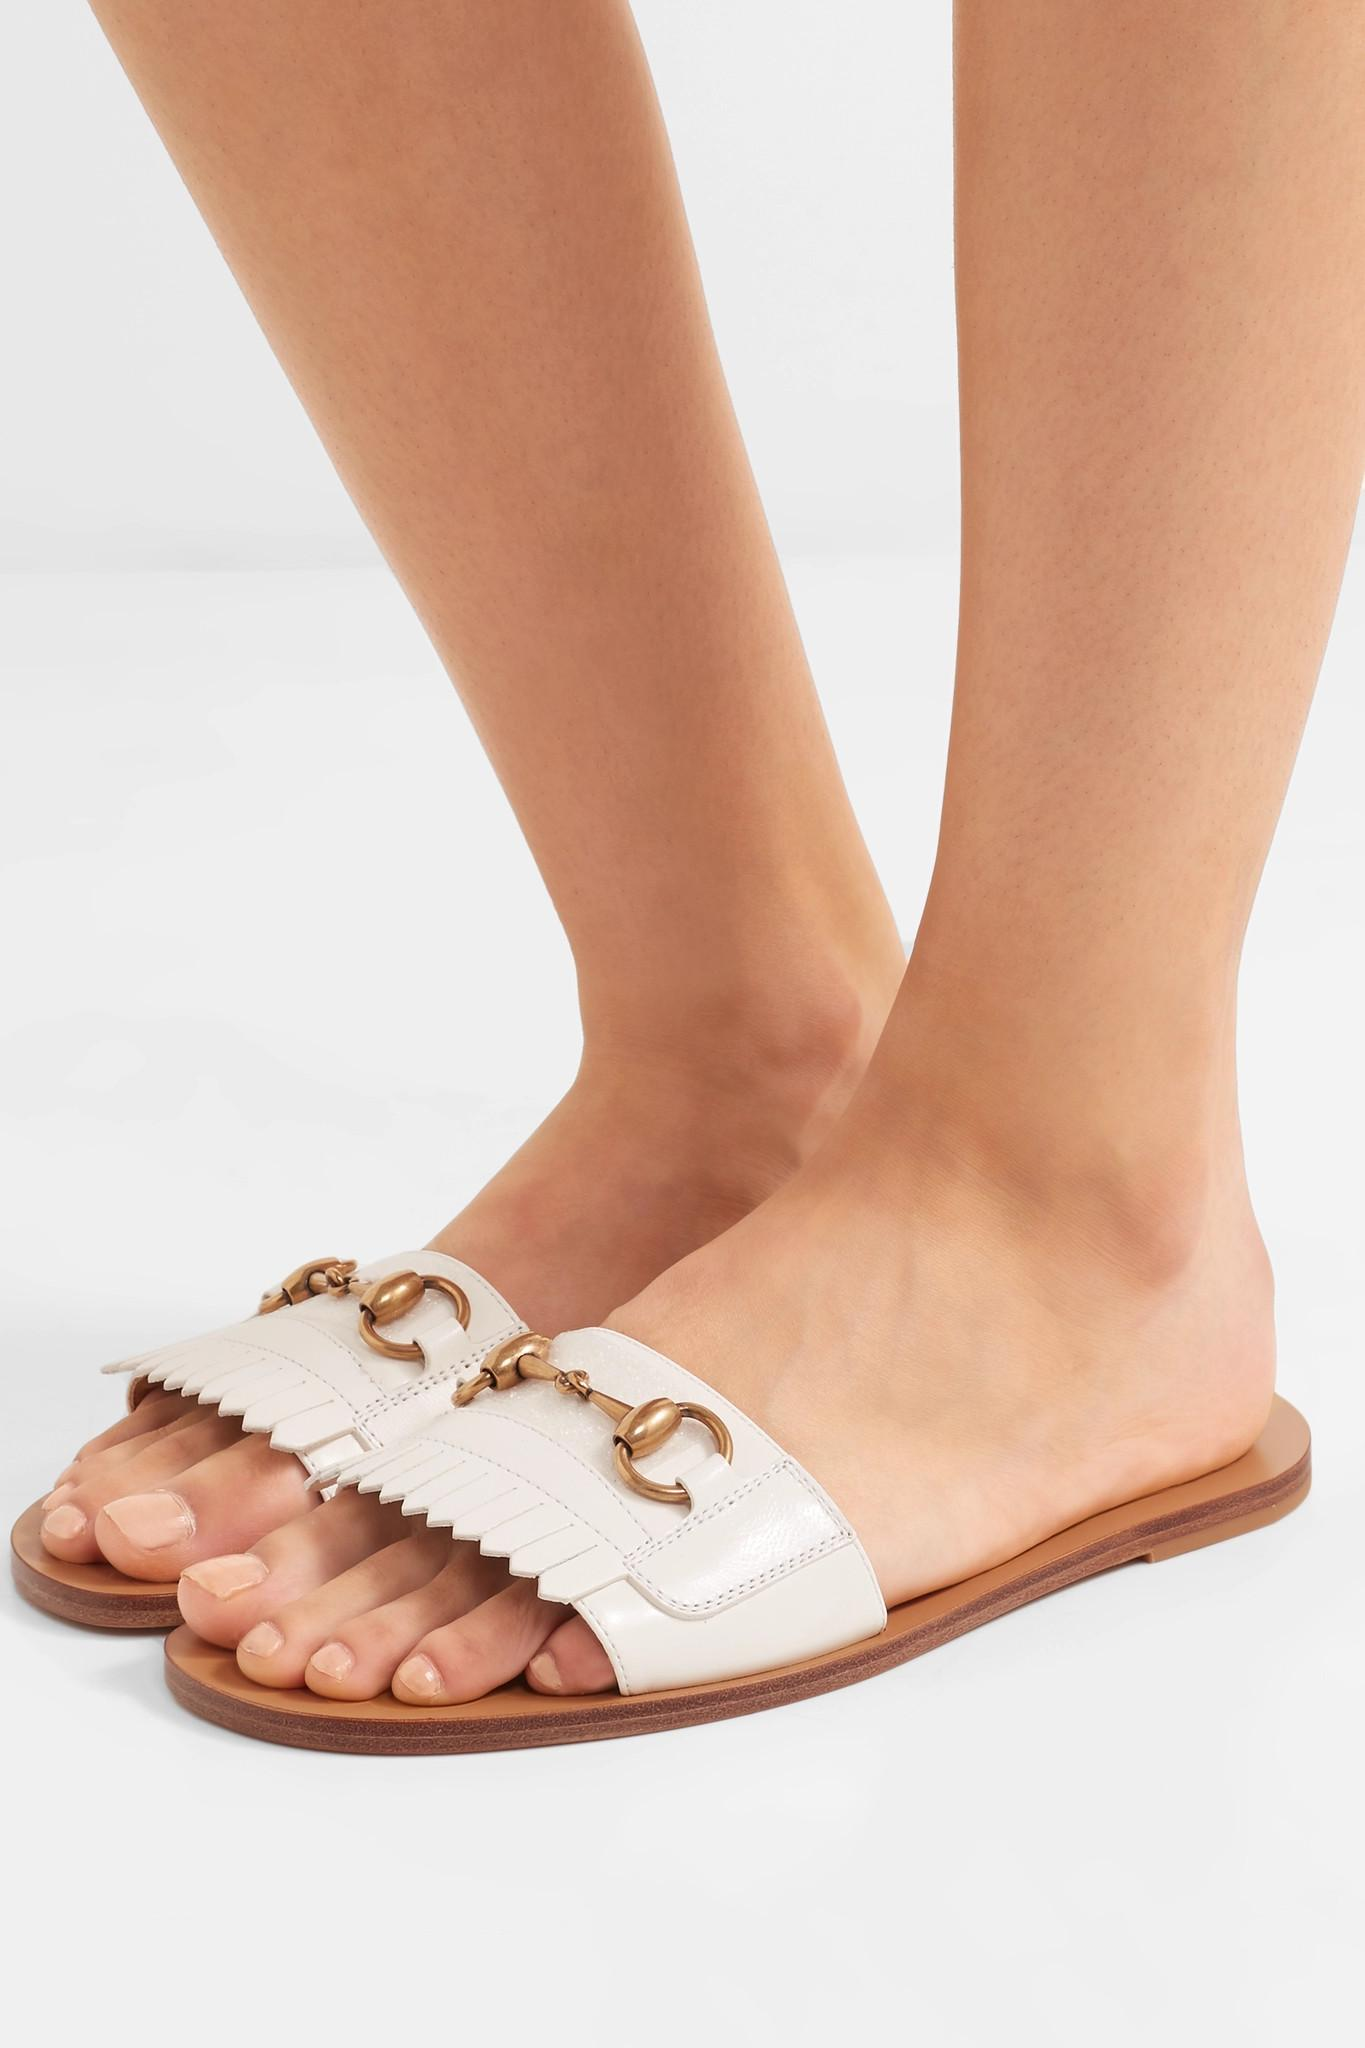 c0ef589ce80 Gucci - White Horsebit-detailed Fringed Leather Slides - Lyst. View  fullscreen